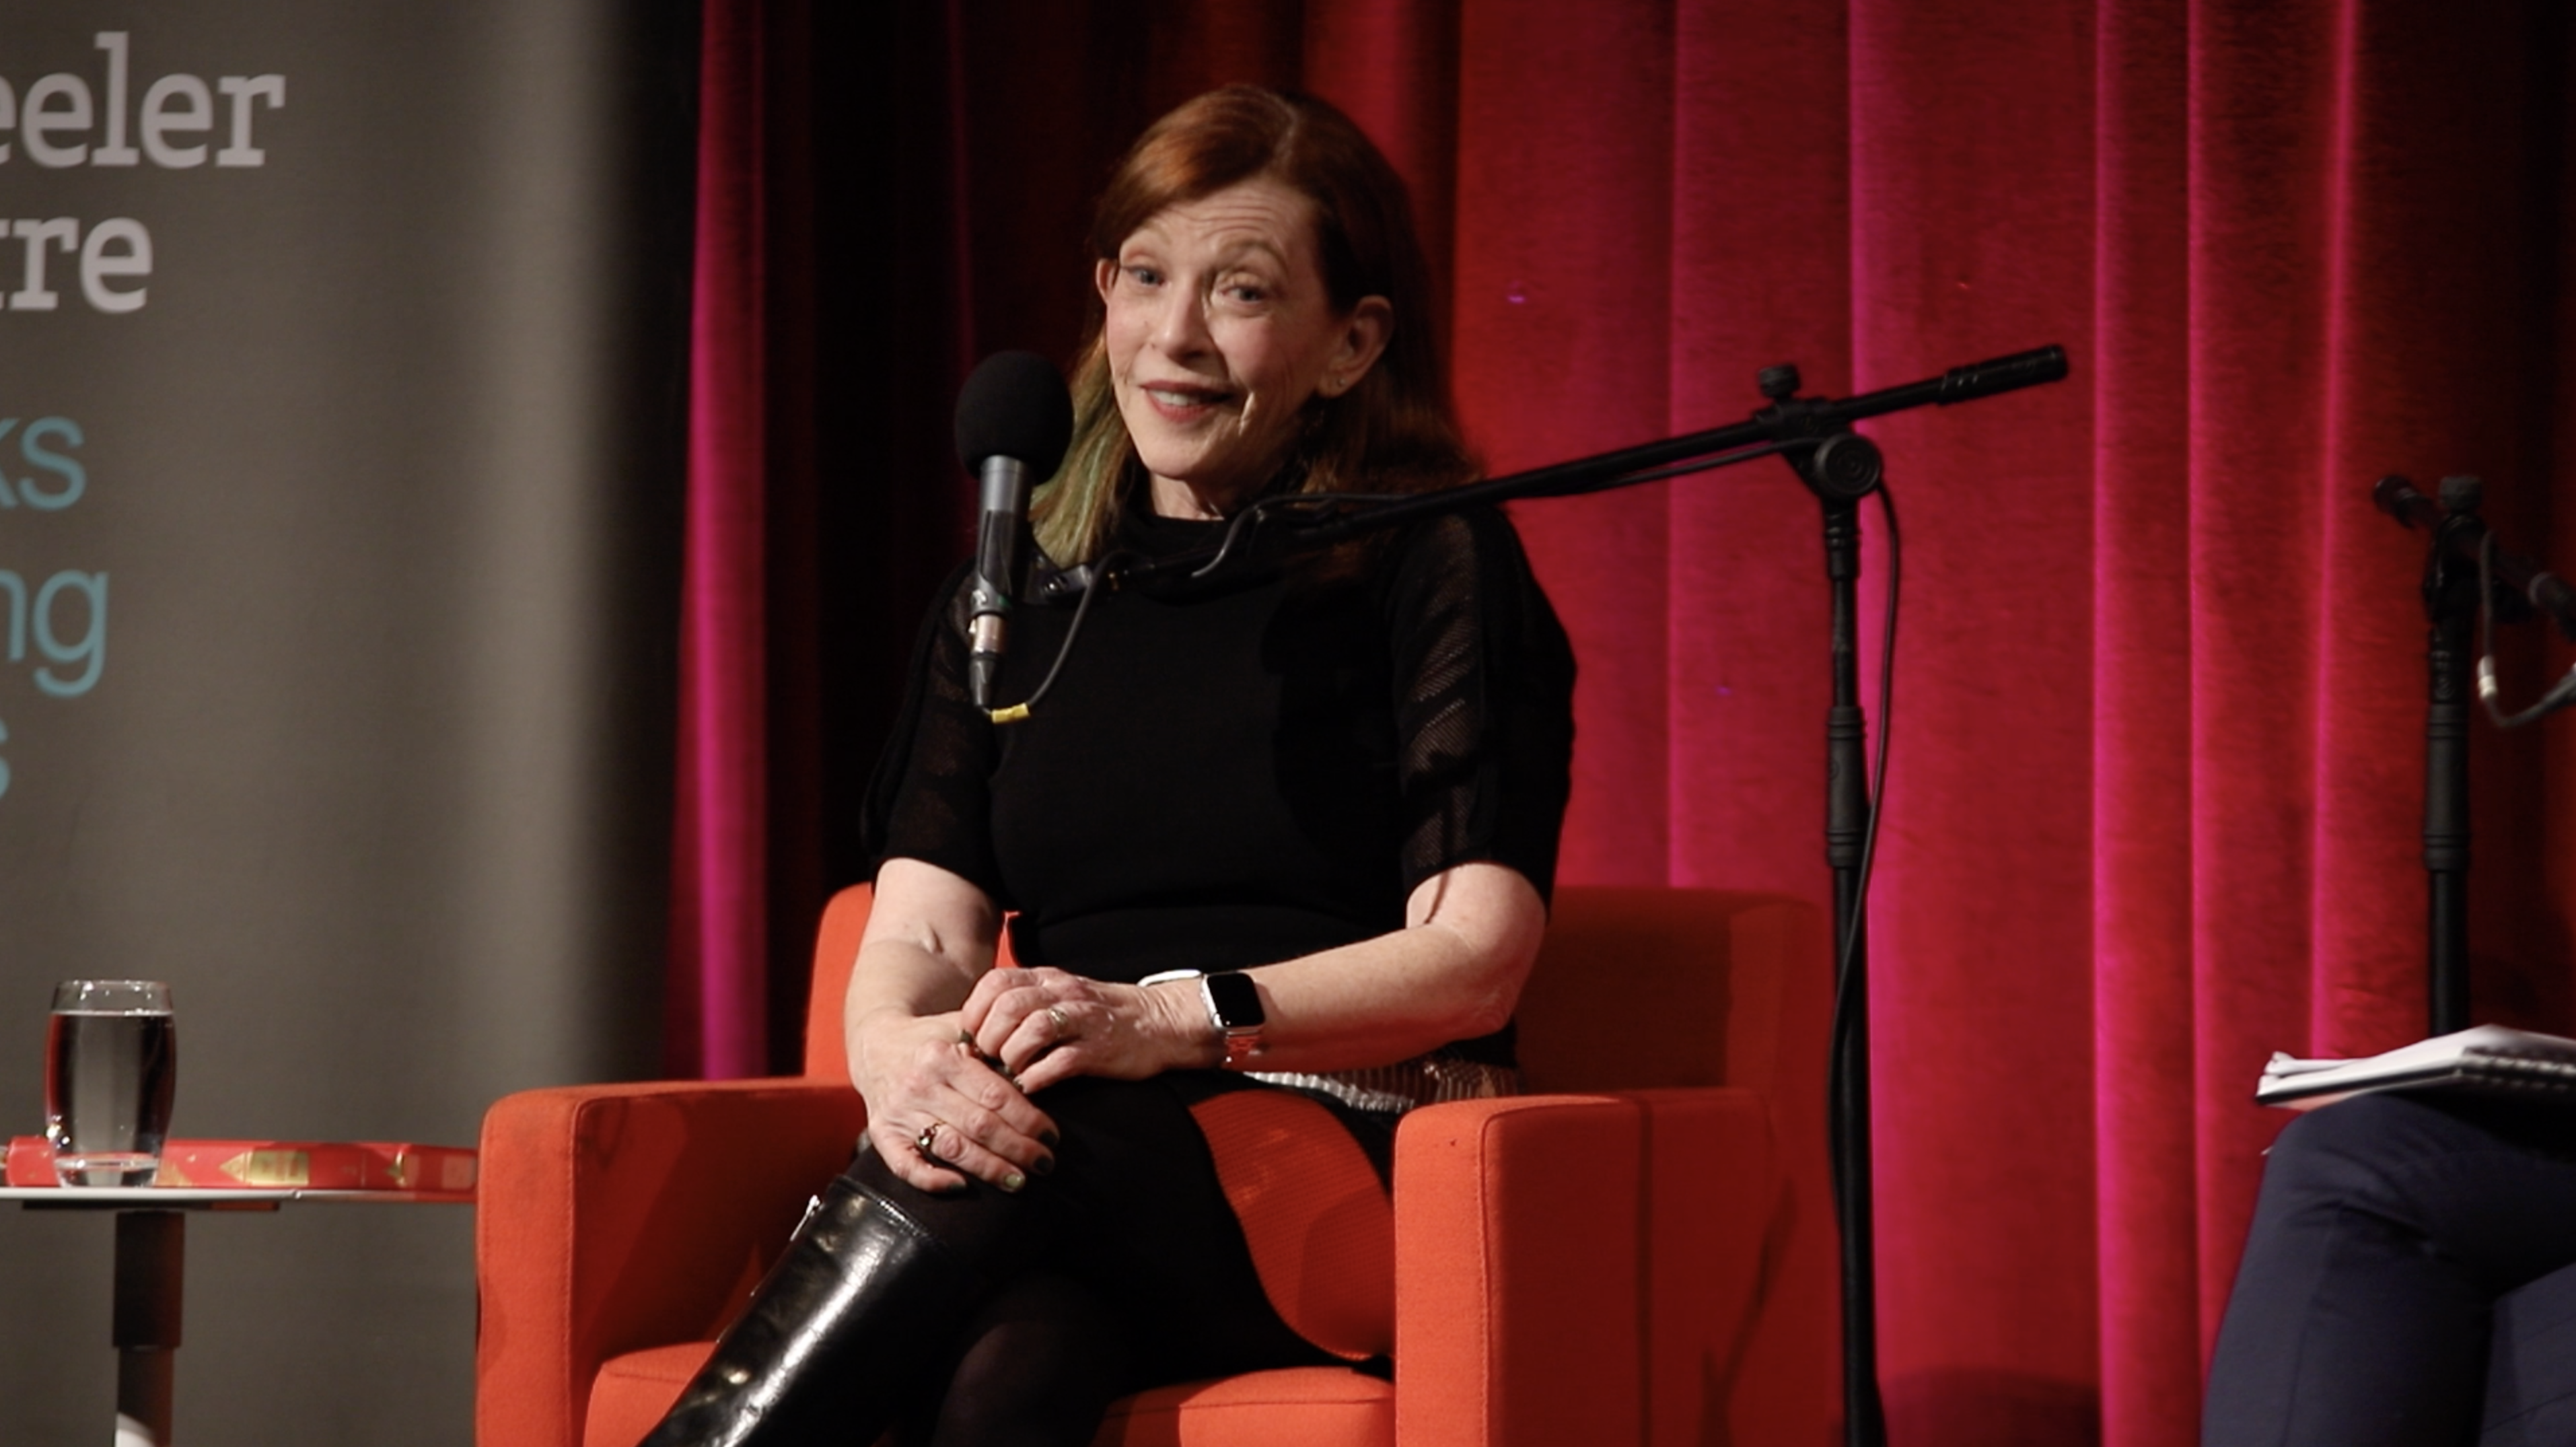 Photo of Susan Orlean, sitting on a red chair in front of a red curtain, hands resting on her knees